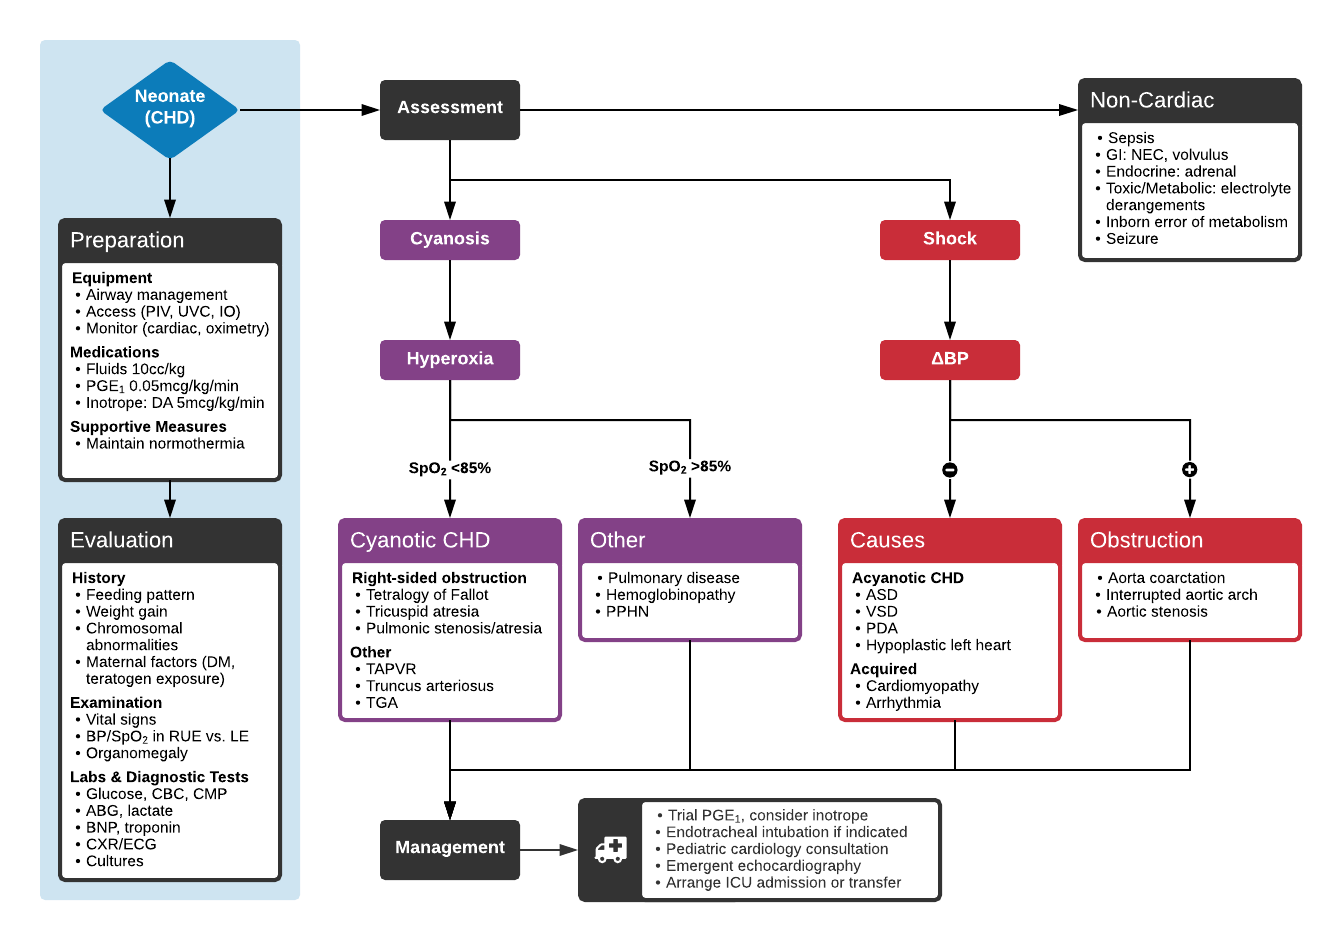 Algorithm for the Evaluation of Neonatal Congenital Heart Disease